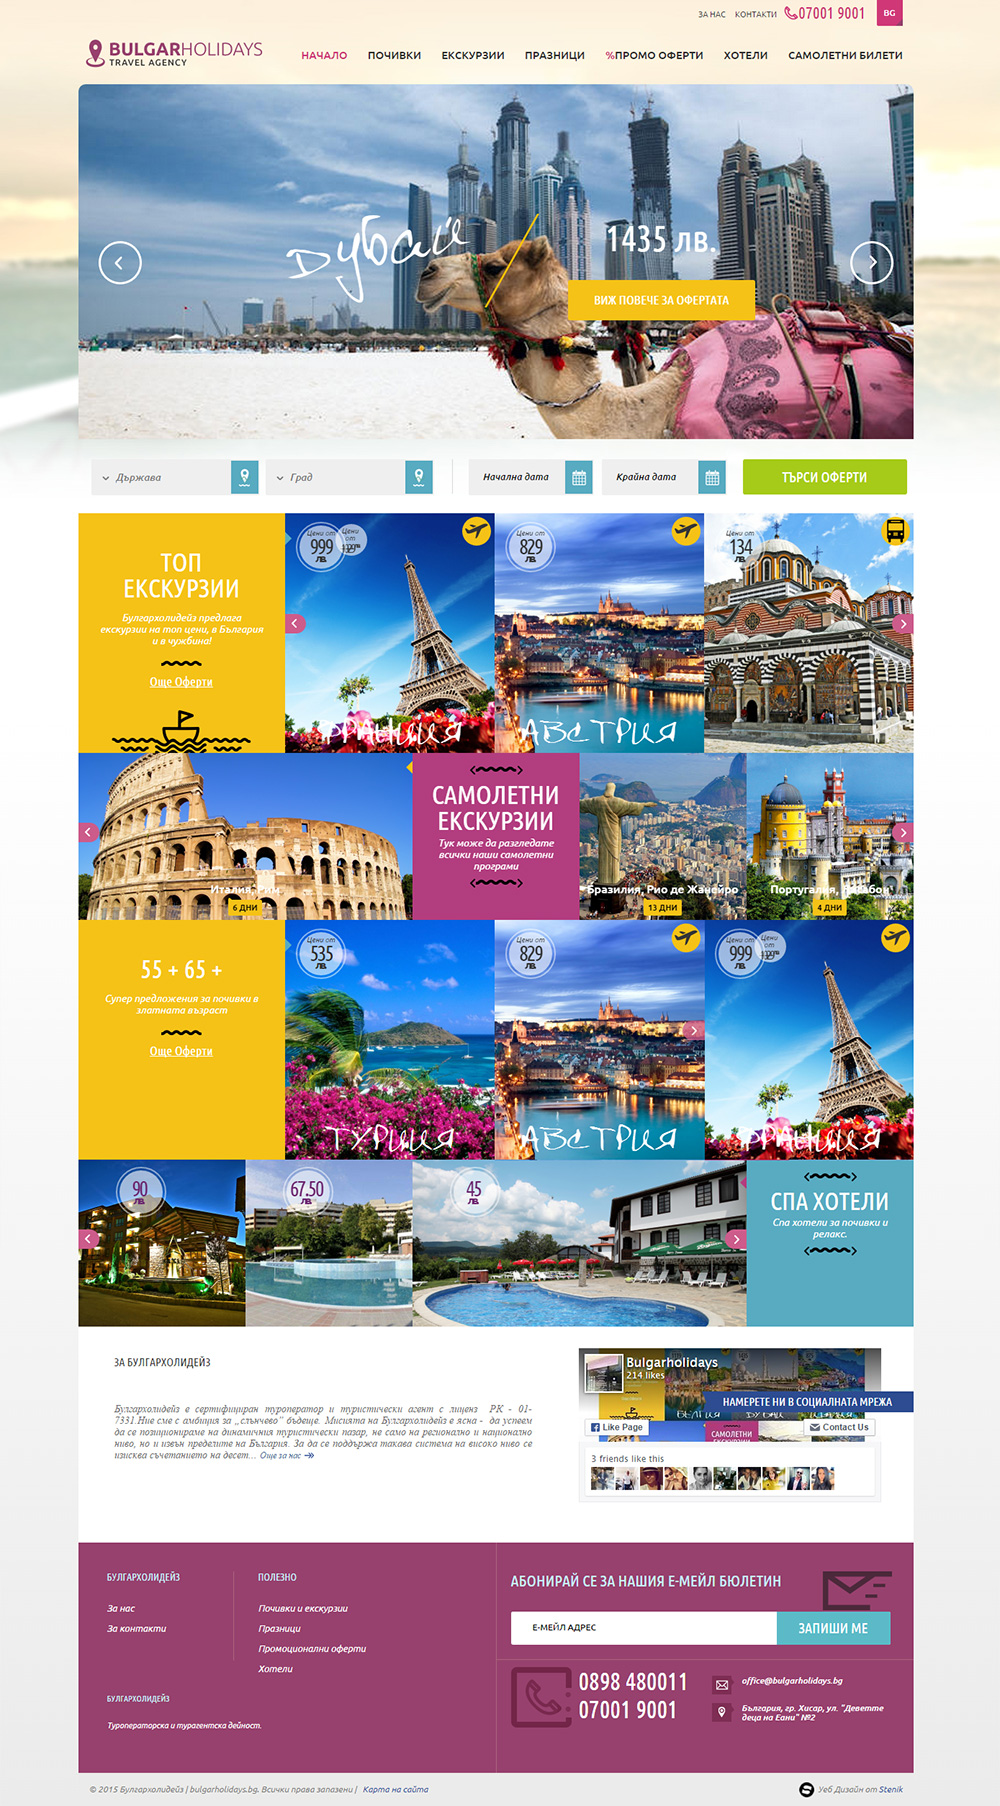 Website for Bulgarian holidays, Bulgarian holidays - Web Sites, Stenik